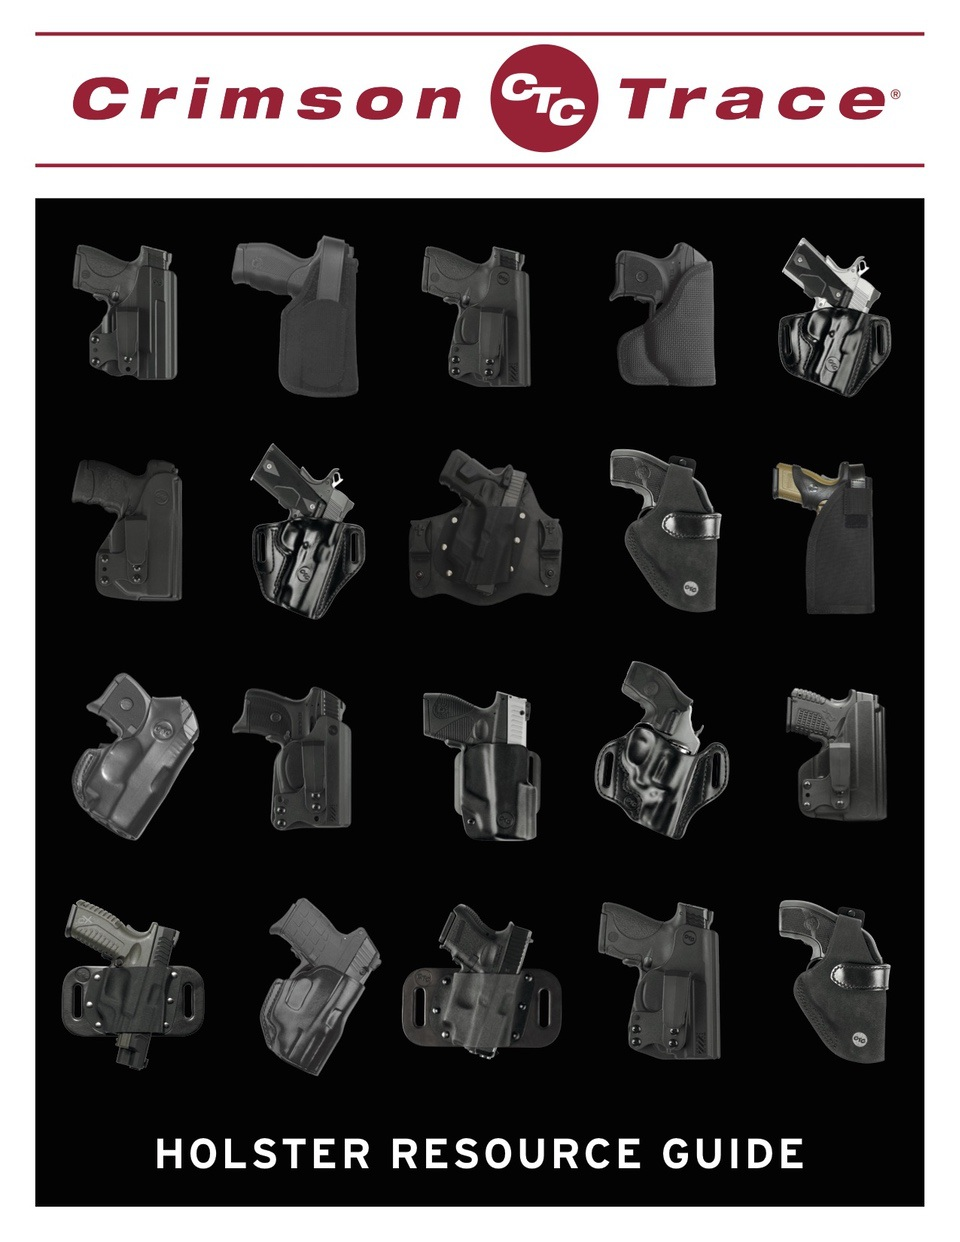 Crimson Trace Holster Resource Guide